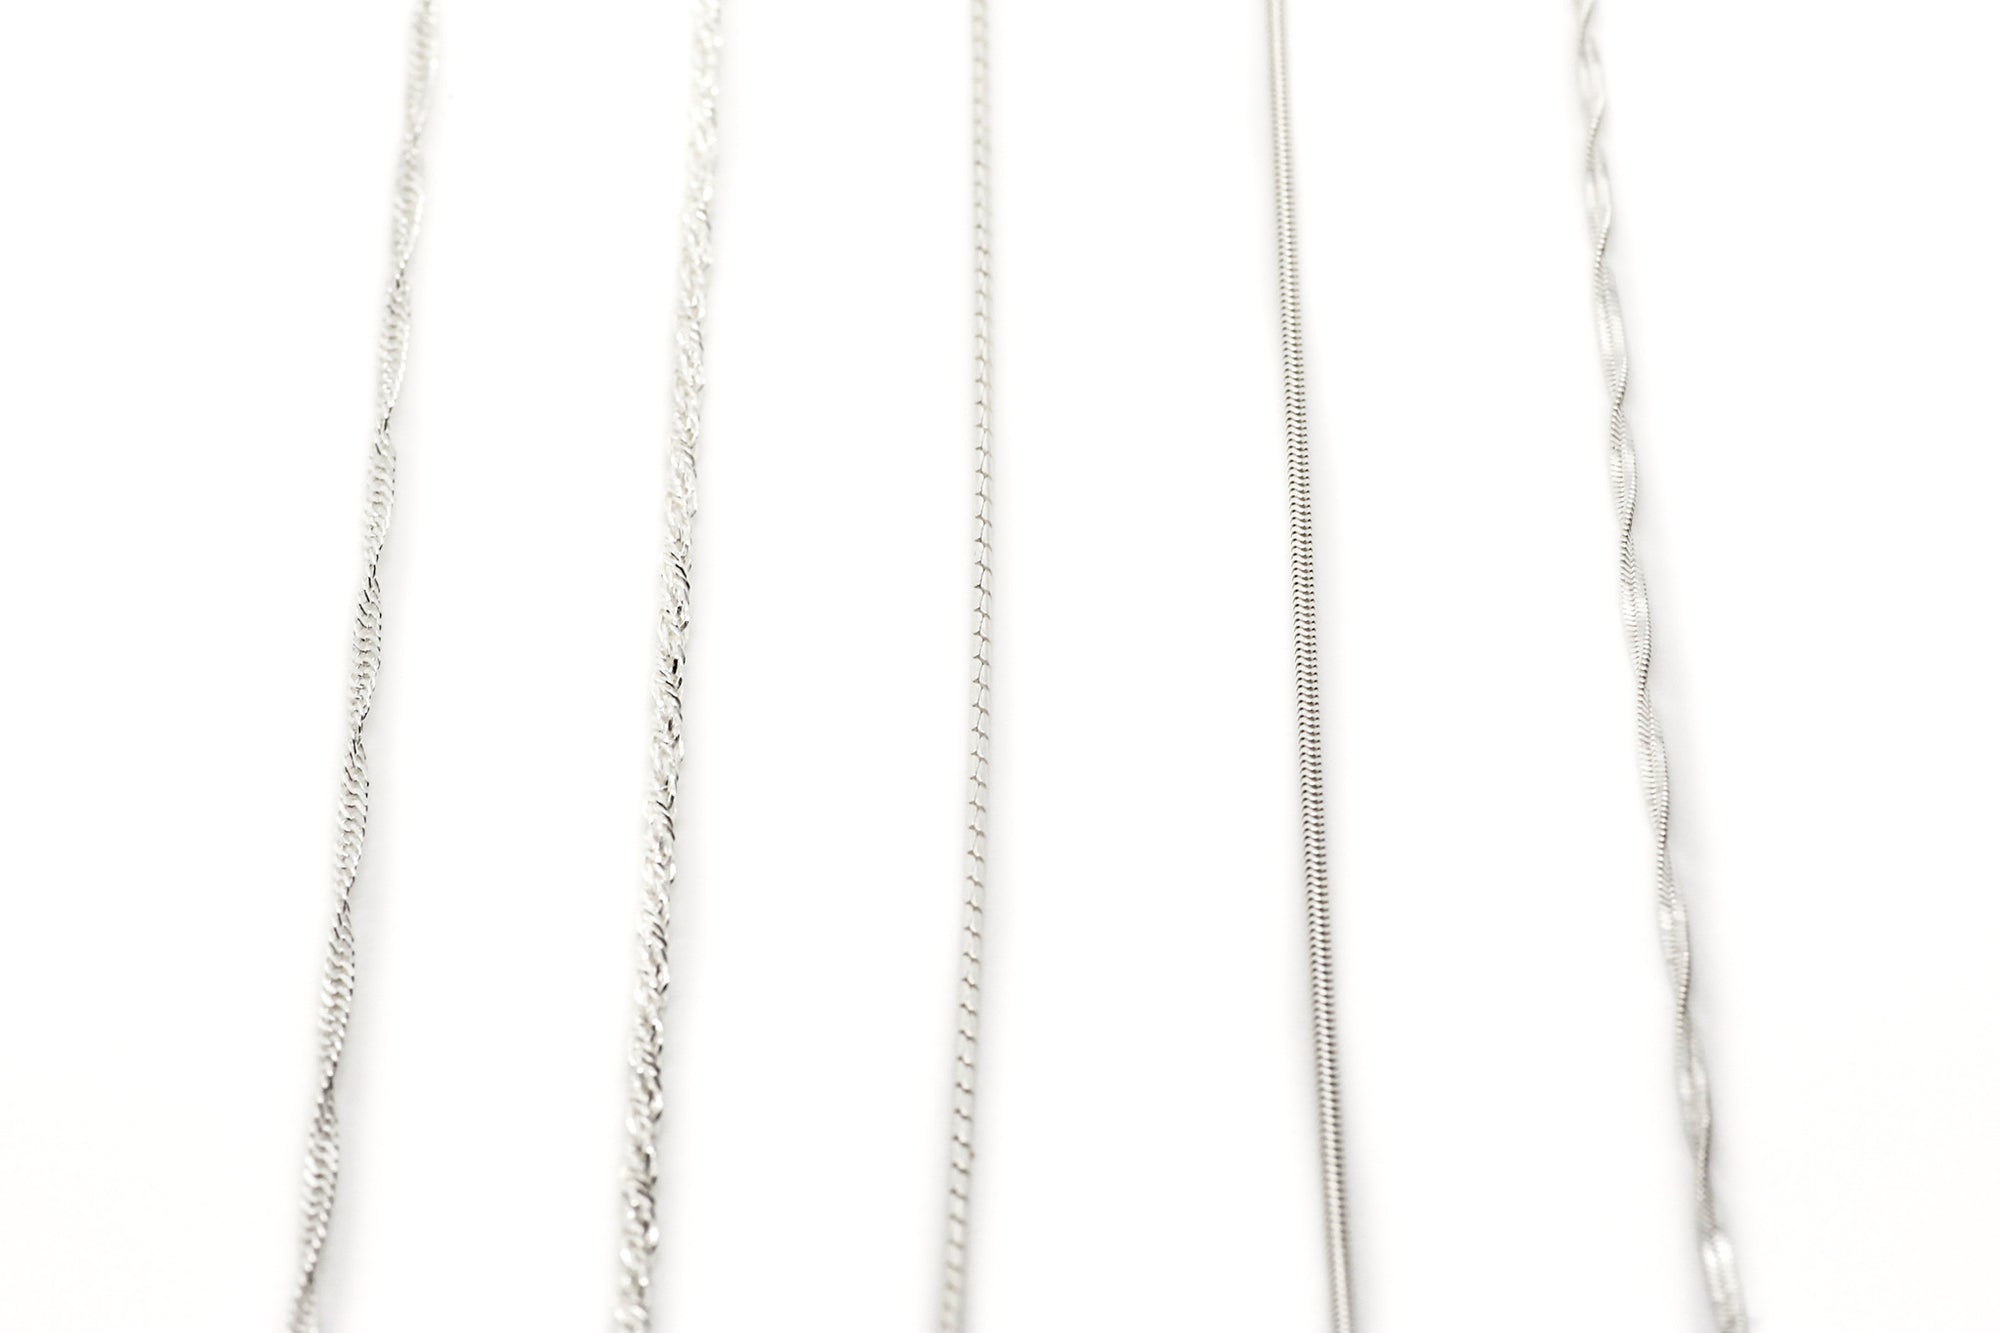 Off the Chain: Sterling Silver Chains Collection